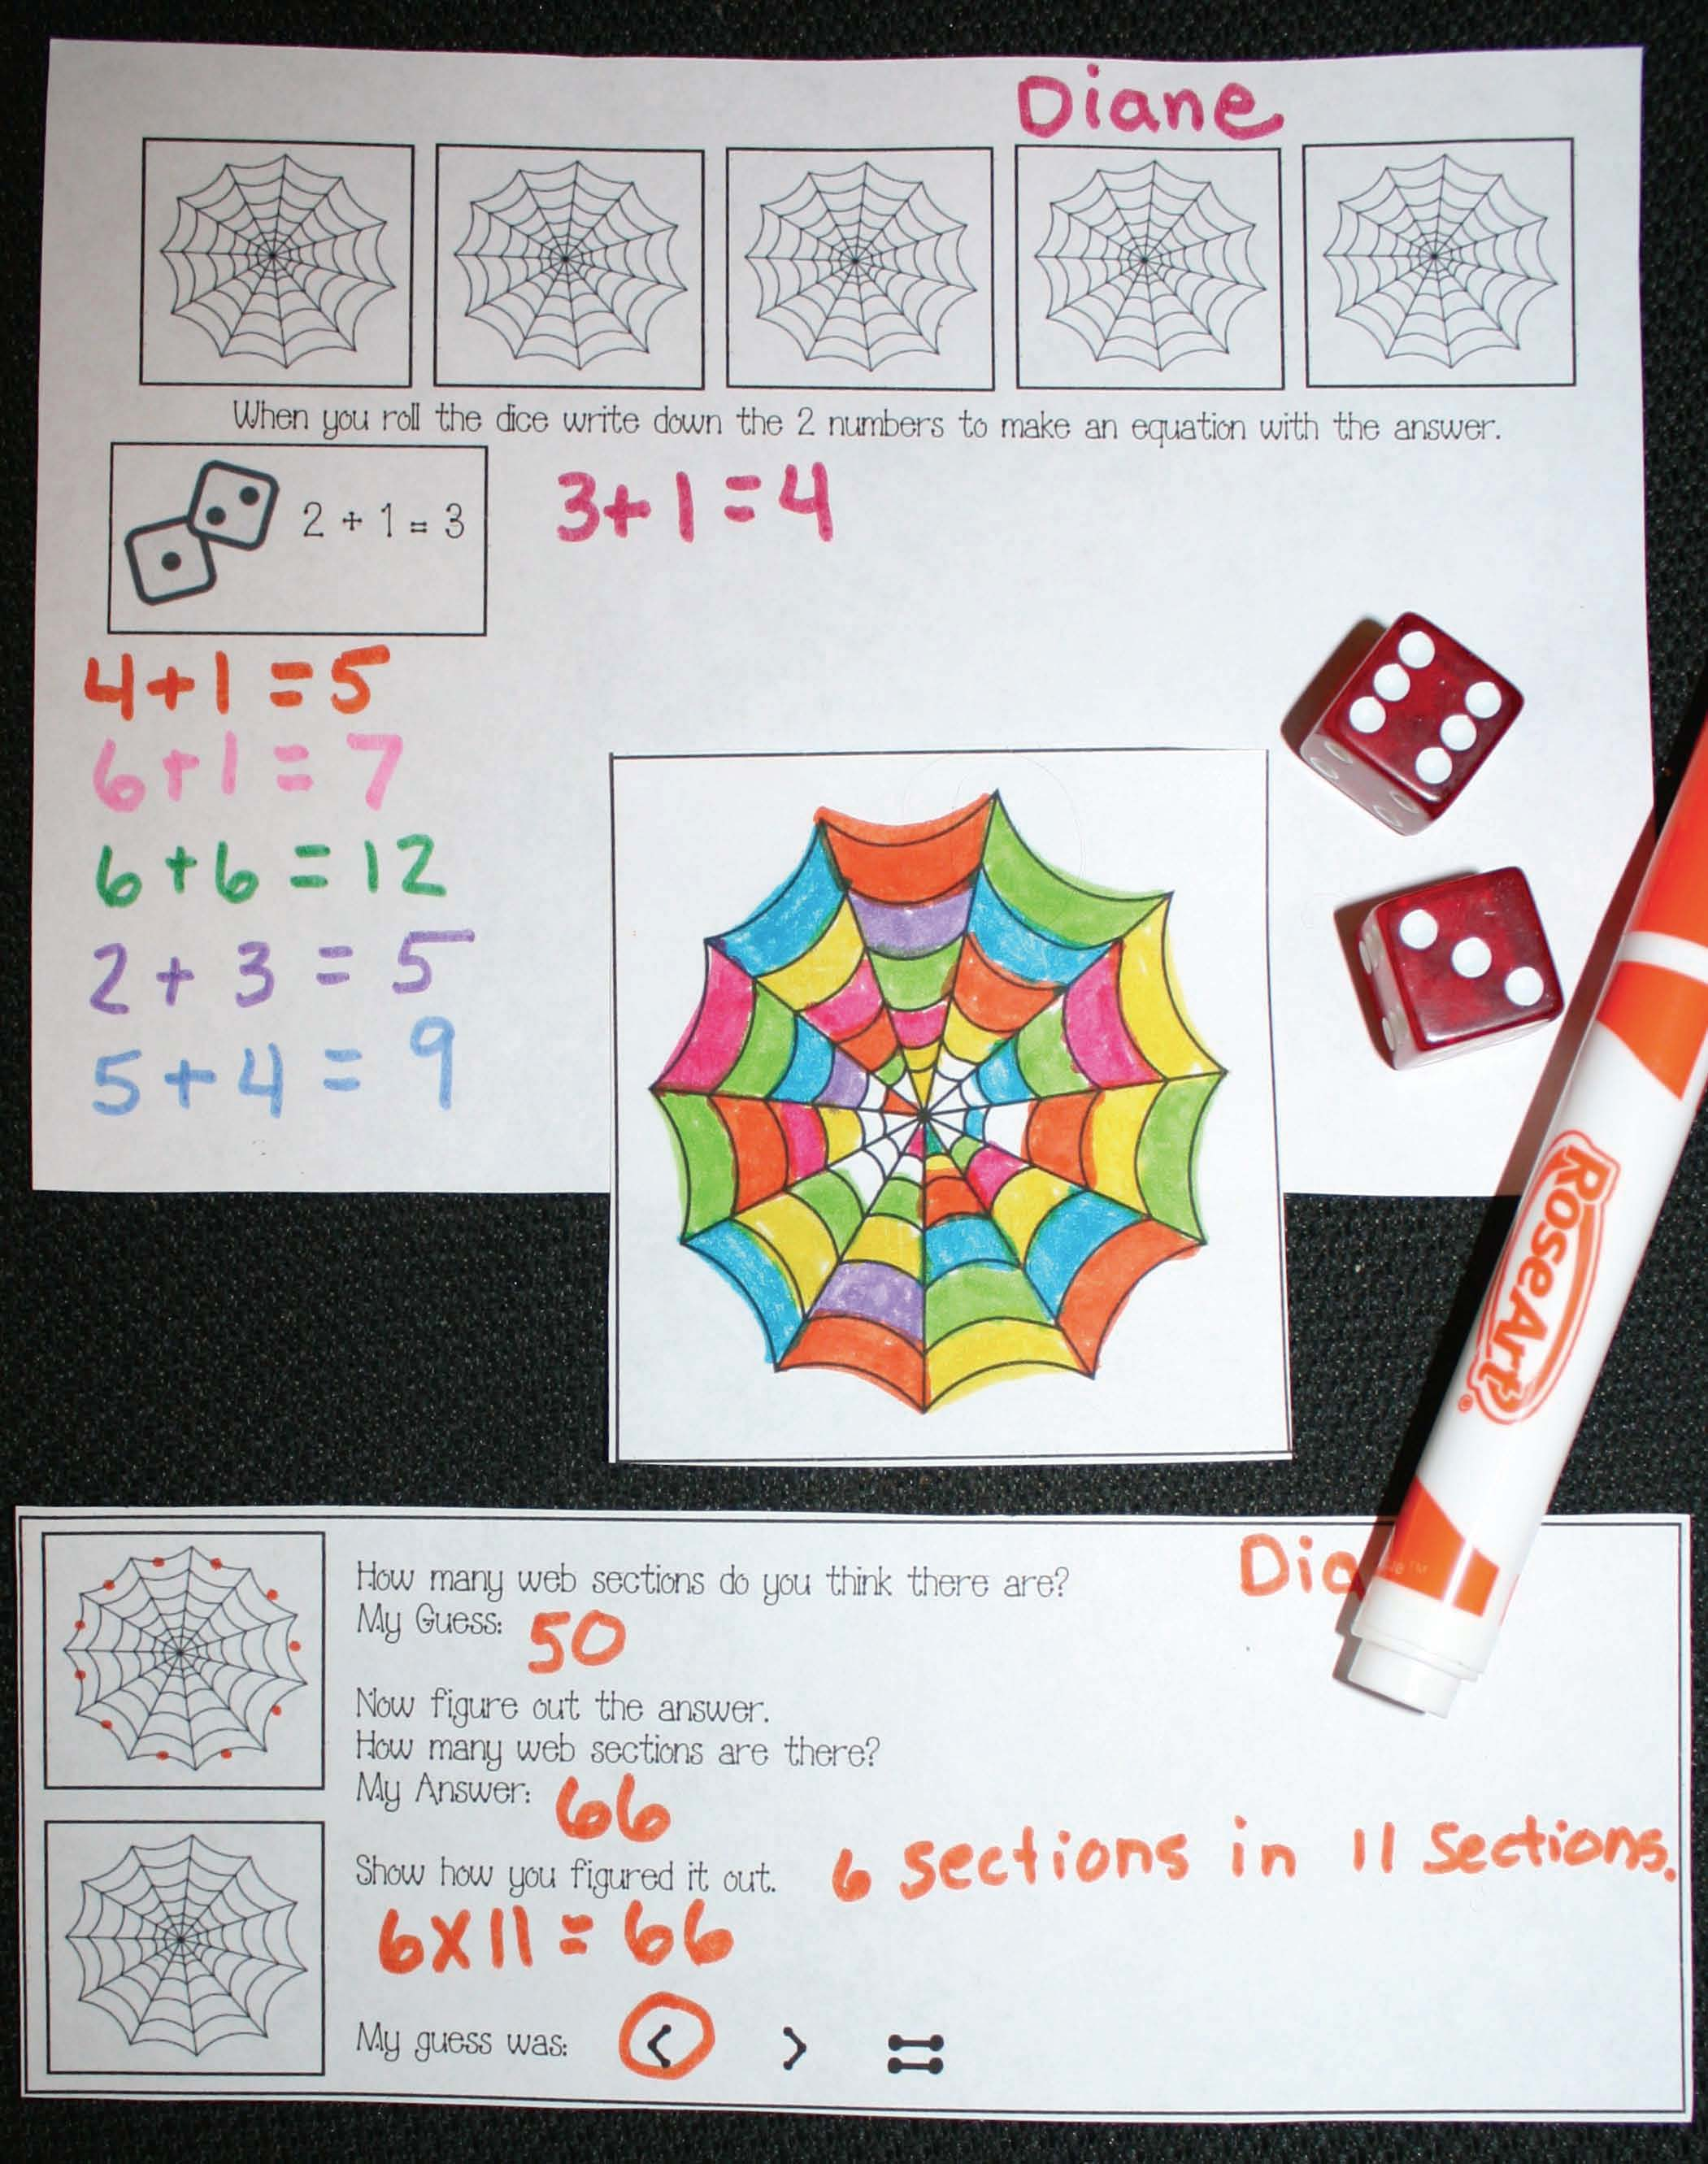 spider activities, spider games, spider crafts, 40 favorite spider books, spider lessons, spider crafts, spider arts and craftes, spider shapes, shape activities, spider writing activities, bat activities, spider and bat venn diagram, venn diagram pattern, venn diagram template,